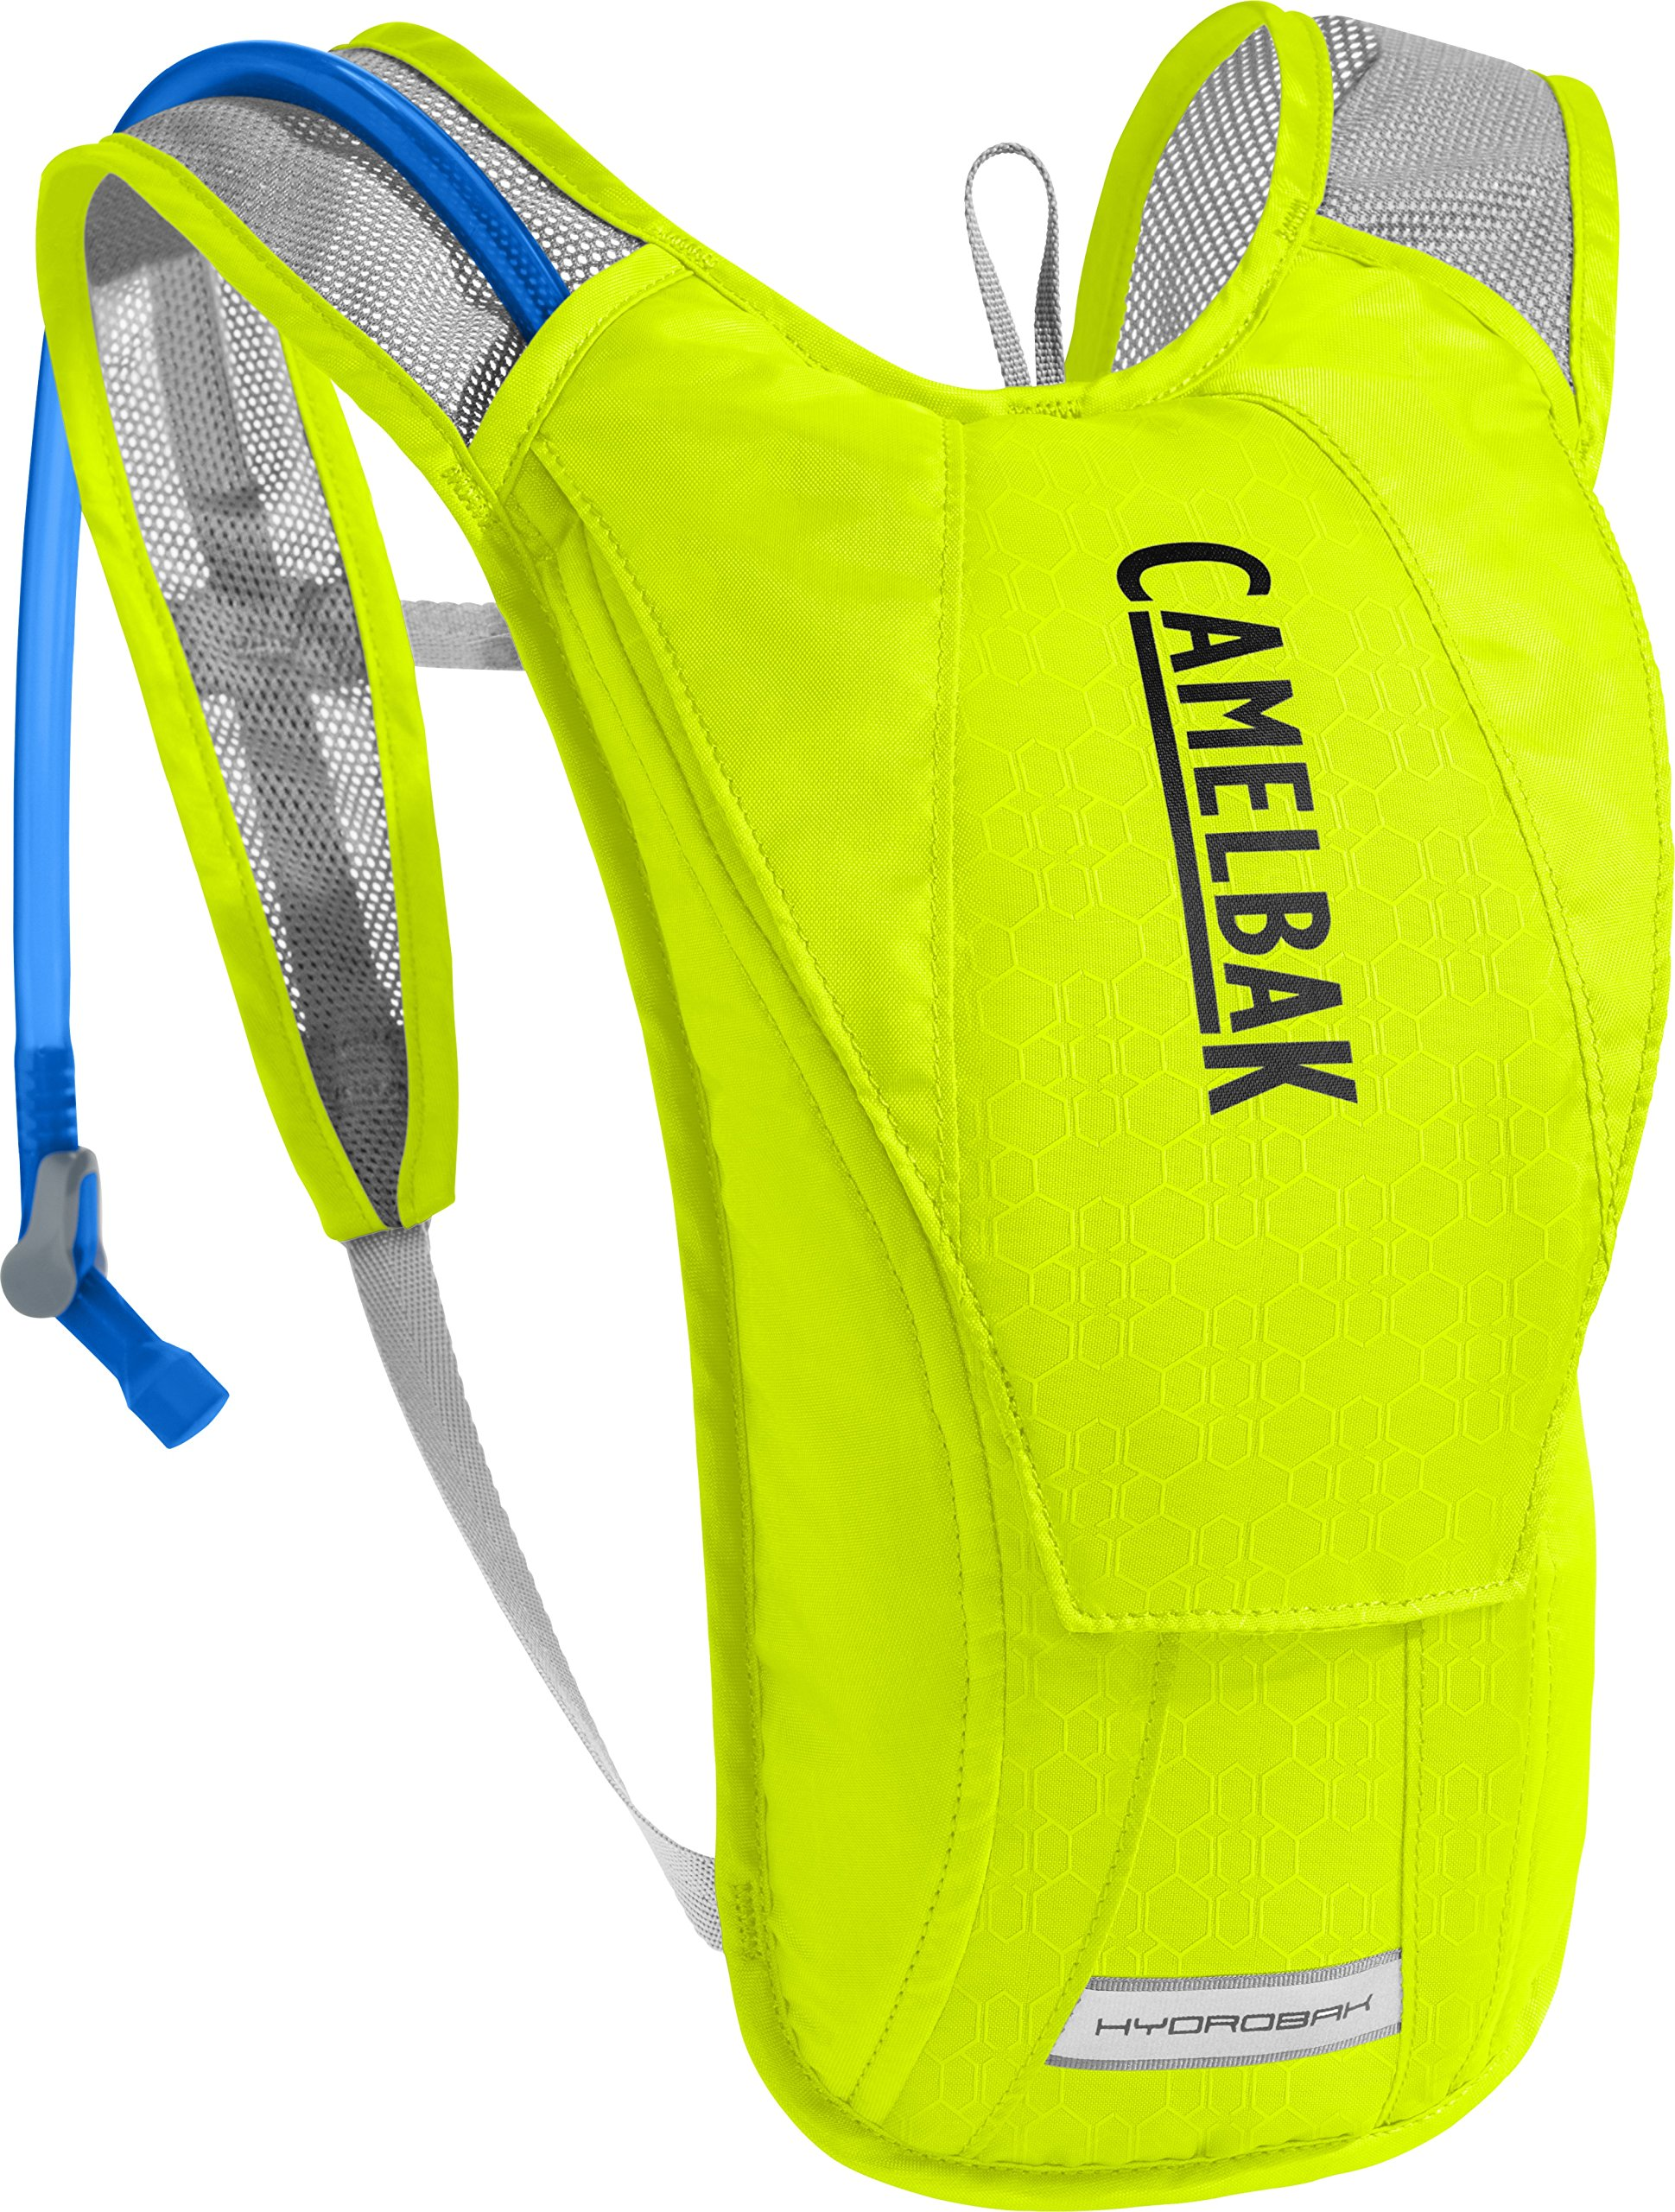 CamelBak HydroBak Crux Reservoir Hydration Pack, Lime Punch/Silver, 1.5 L/50 oz